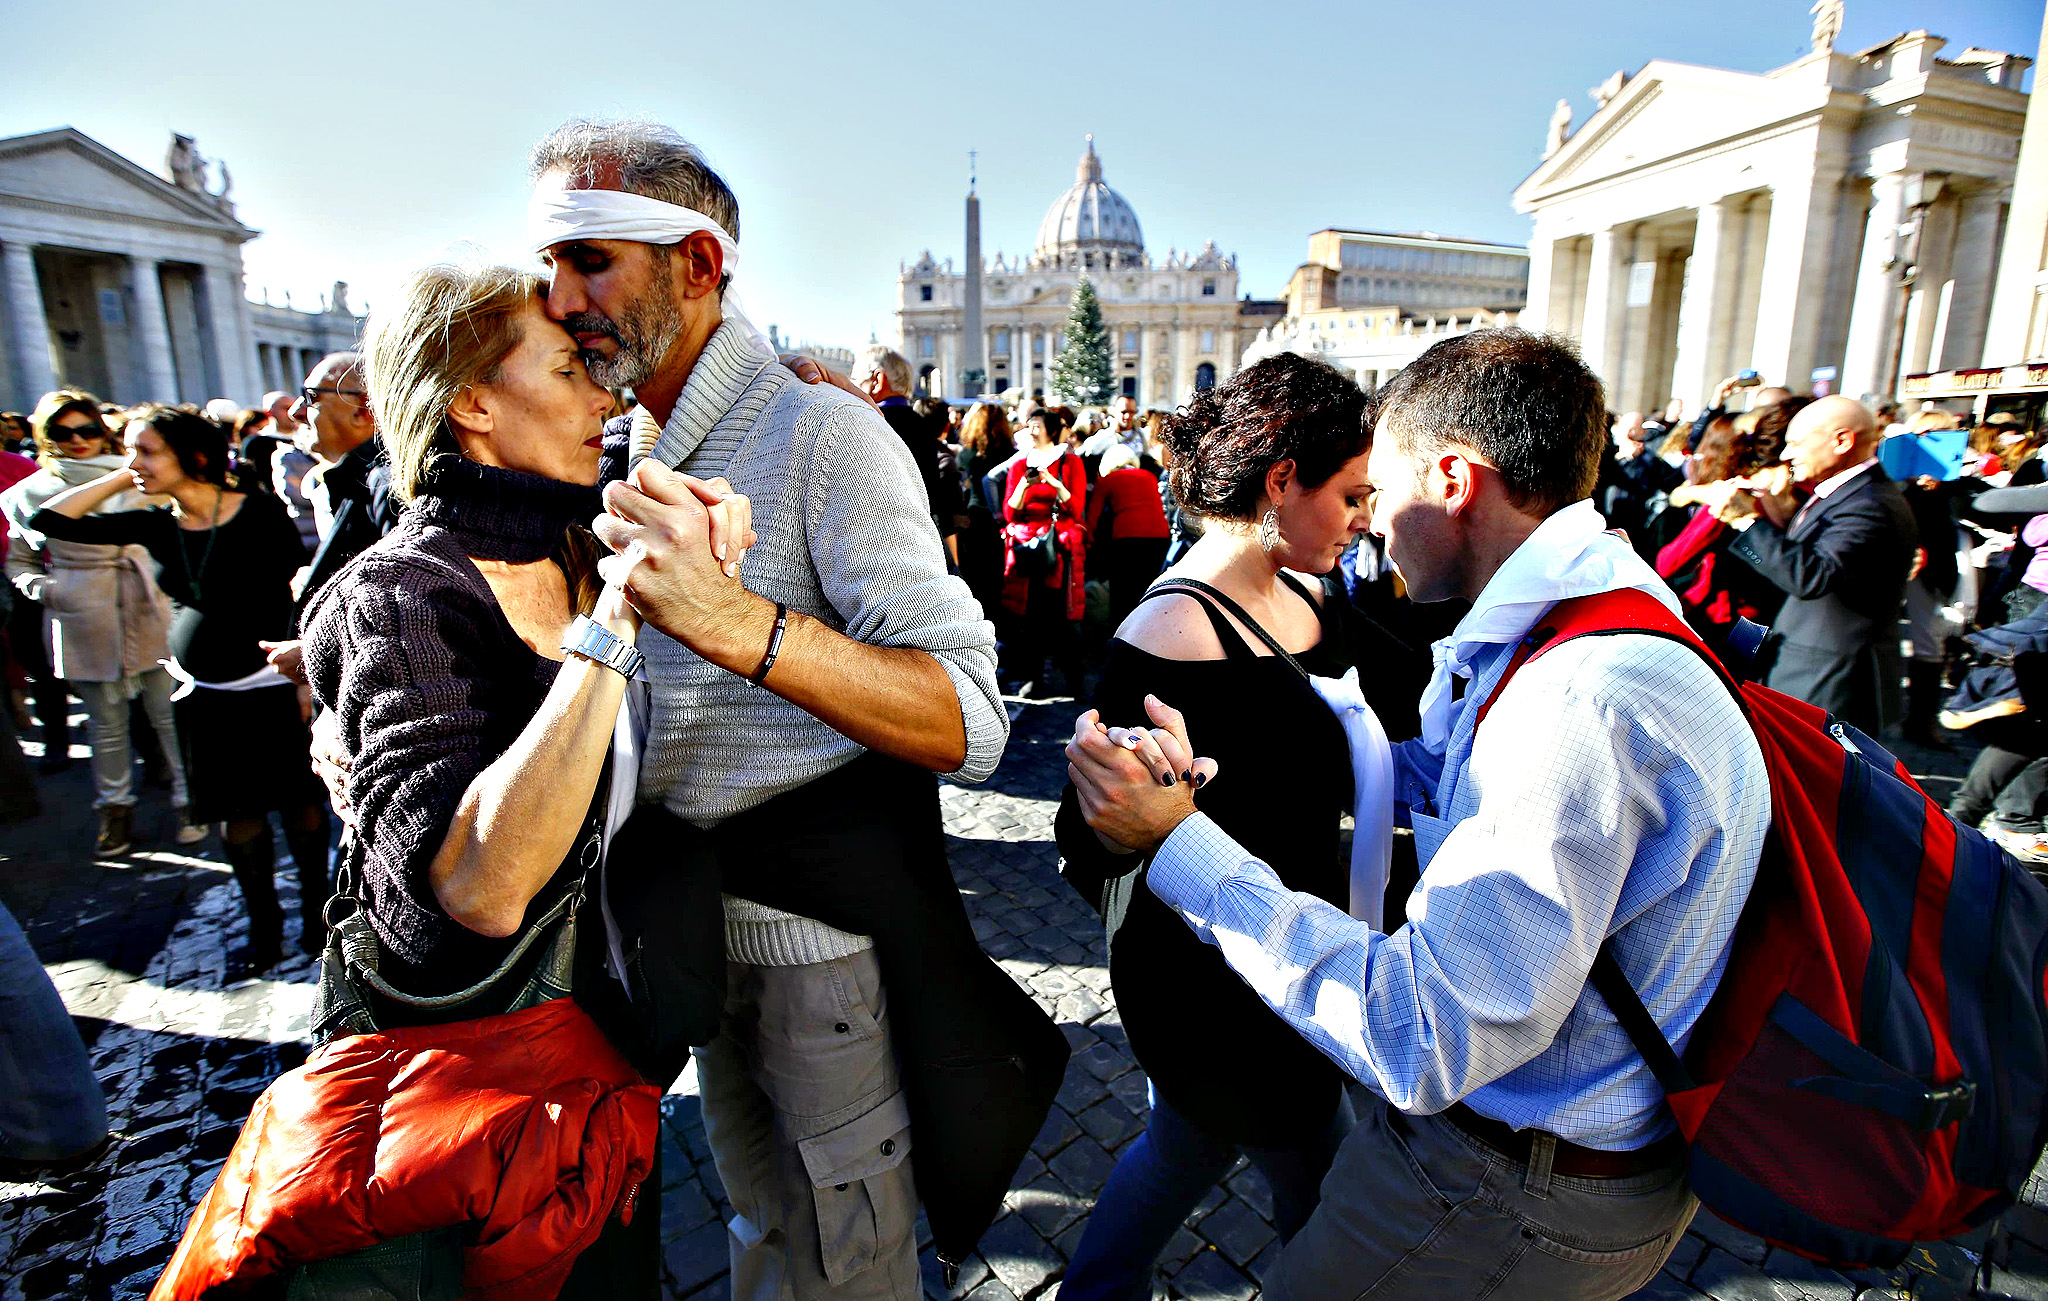 "Couples dance a tango in front of Saint Peter's basilica at the Vatican, December 17, 2014. At the rear edge of the square more than 2,000 people, who came to Rome from all over Italy for the 78th birthday of Pope Francis, danced in ""A tango for Pope Francis"" event as music blared."